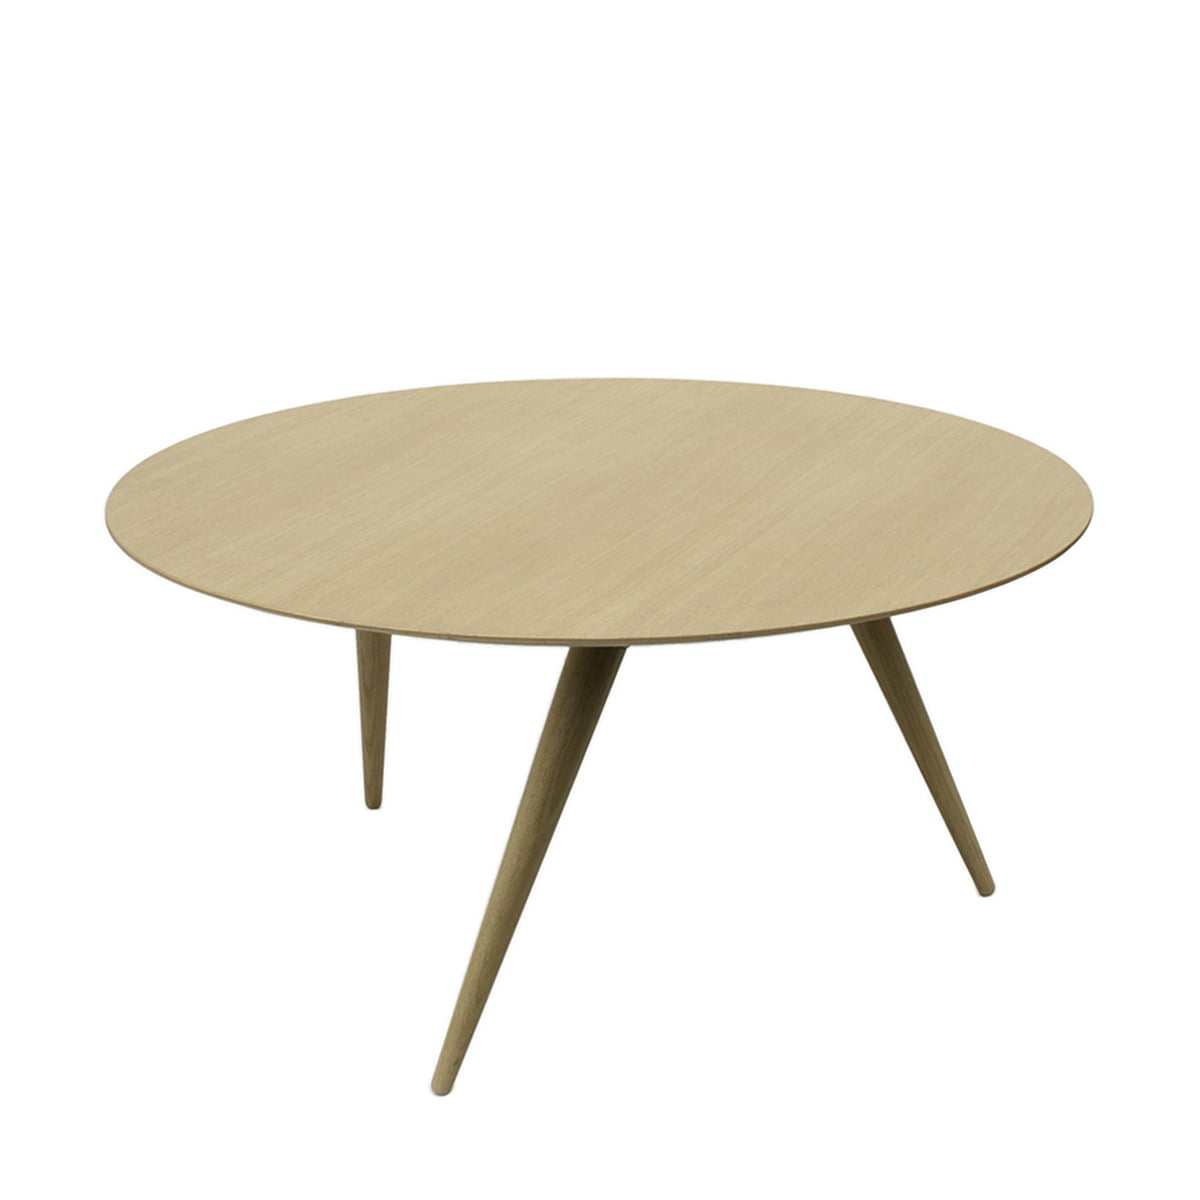 Low Turn Coffee Table By Maigrau At The Shop